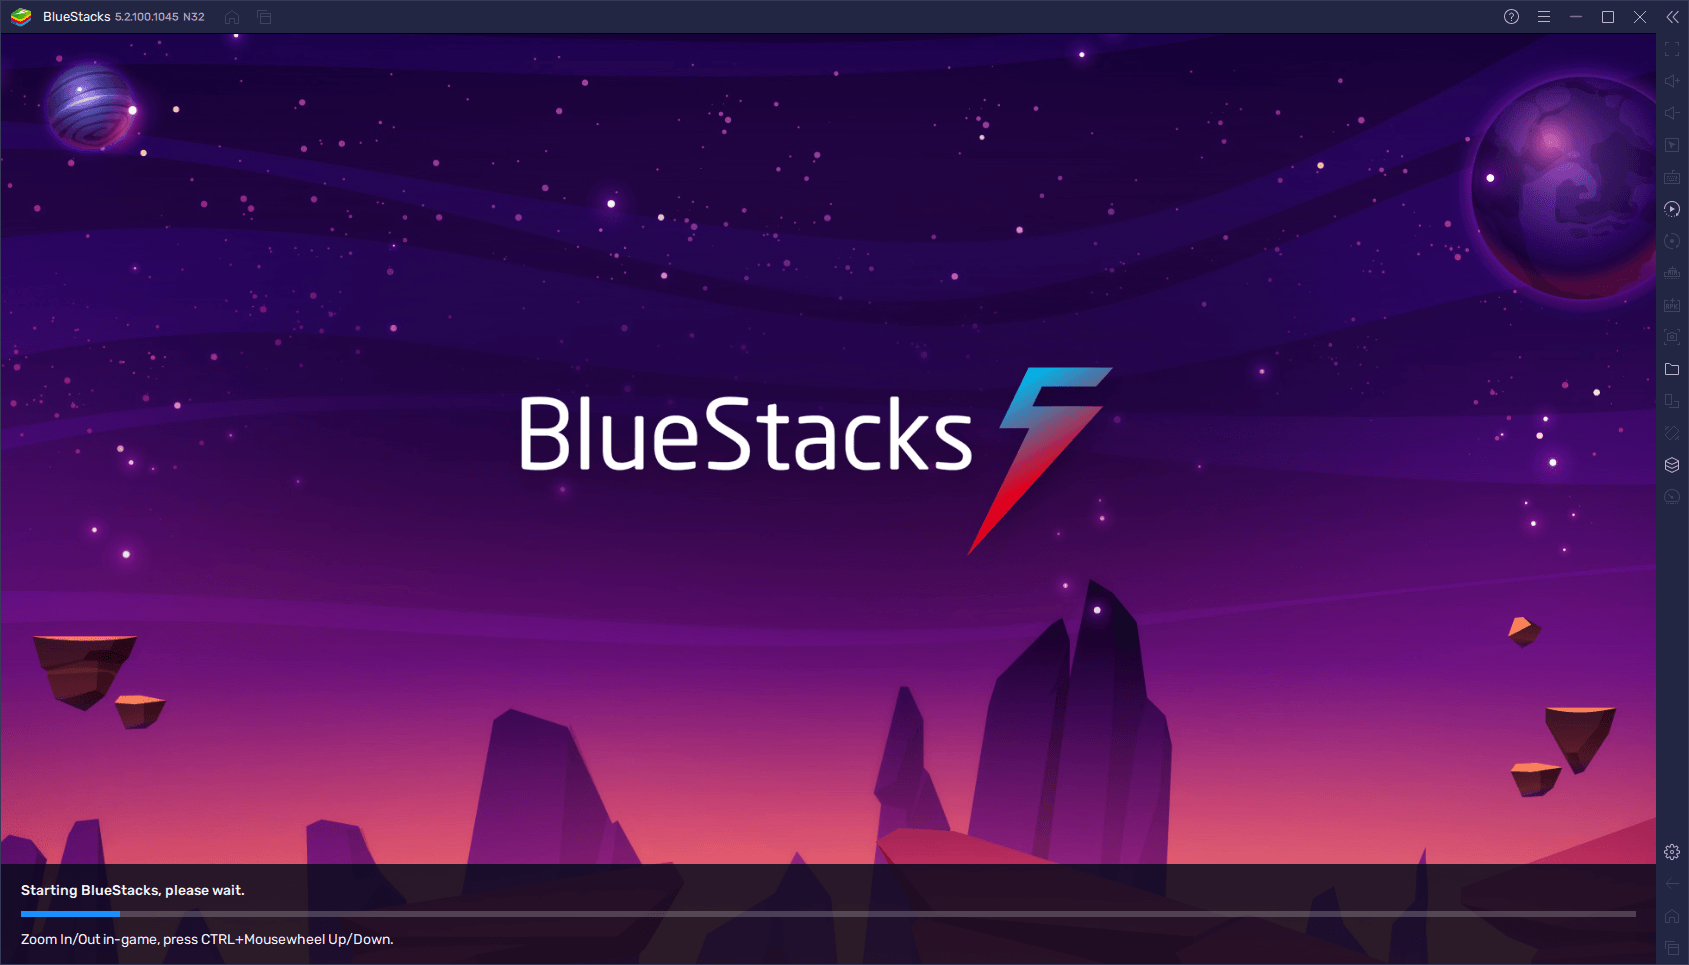 Latest BlueStacks Update Brings Android 9 Support Along with an Expanded Library of Games